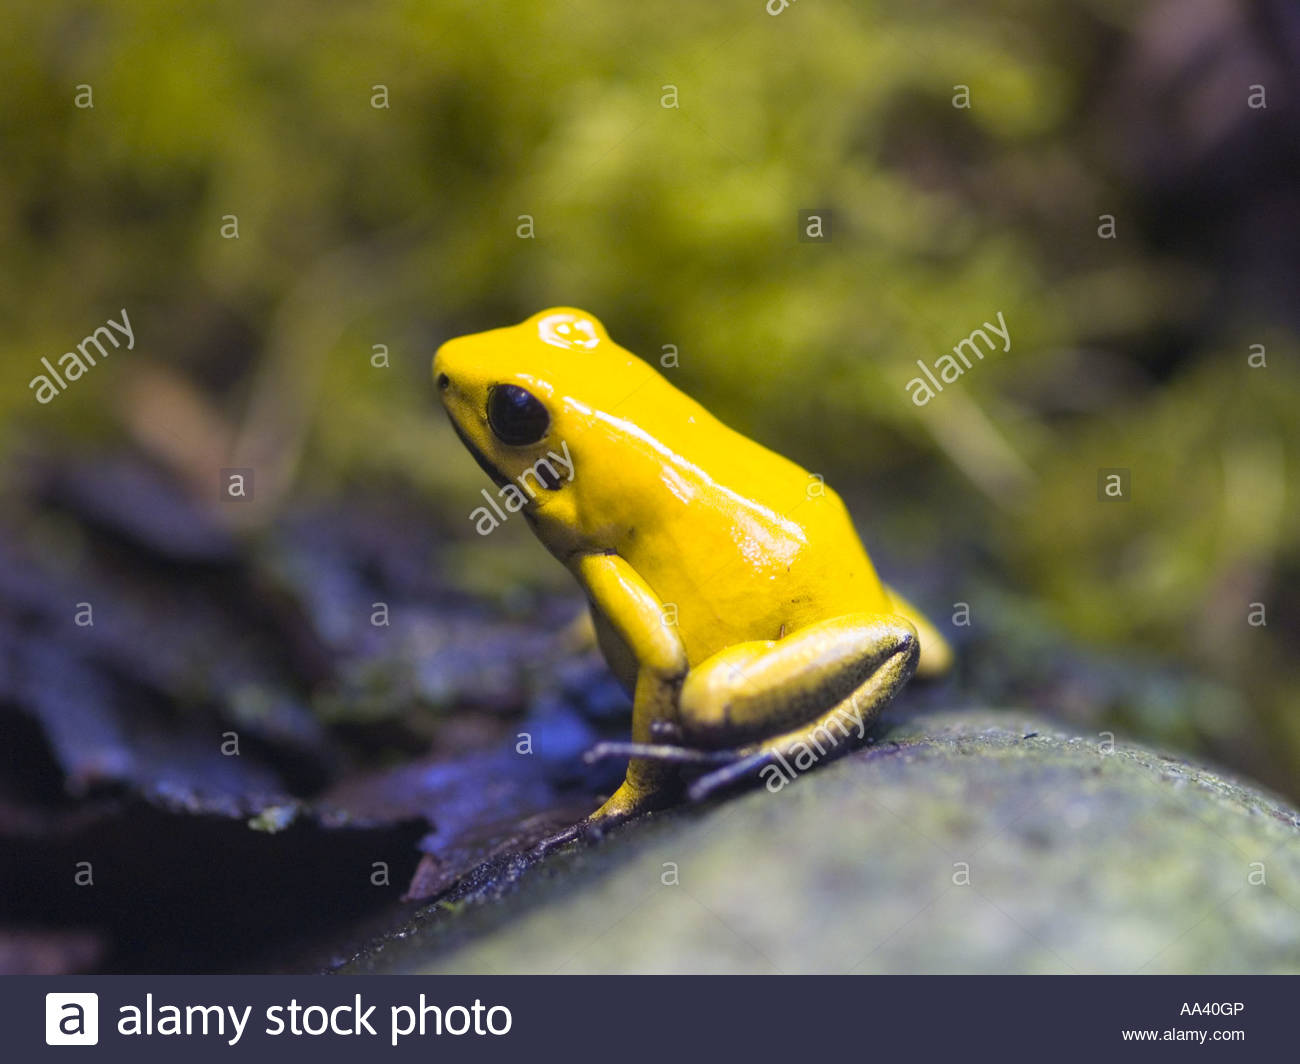 Black legged or Bi colored Poison Dart Frog Phyllobates bicolor one of the most poisonous of the South American - Stock Image